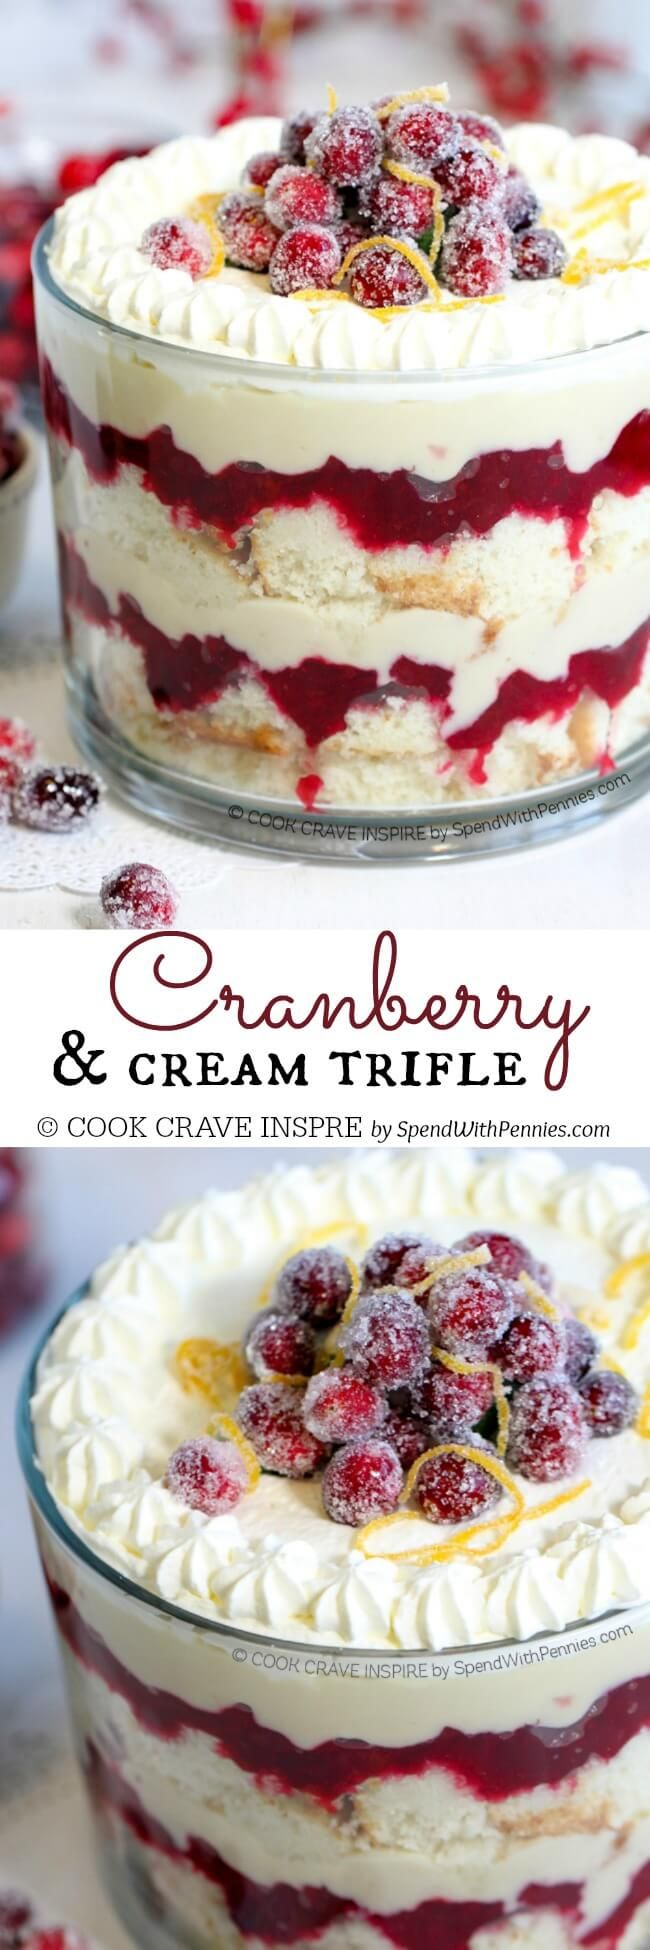 This easy Cranberry Trifle features soft cake layered with sweet tart cranberries and homemade custard